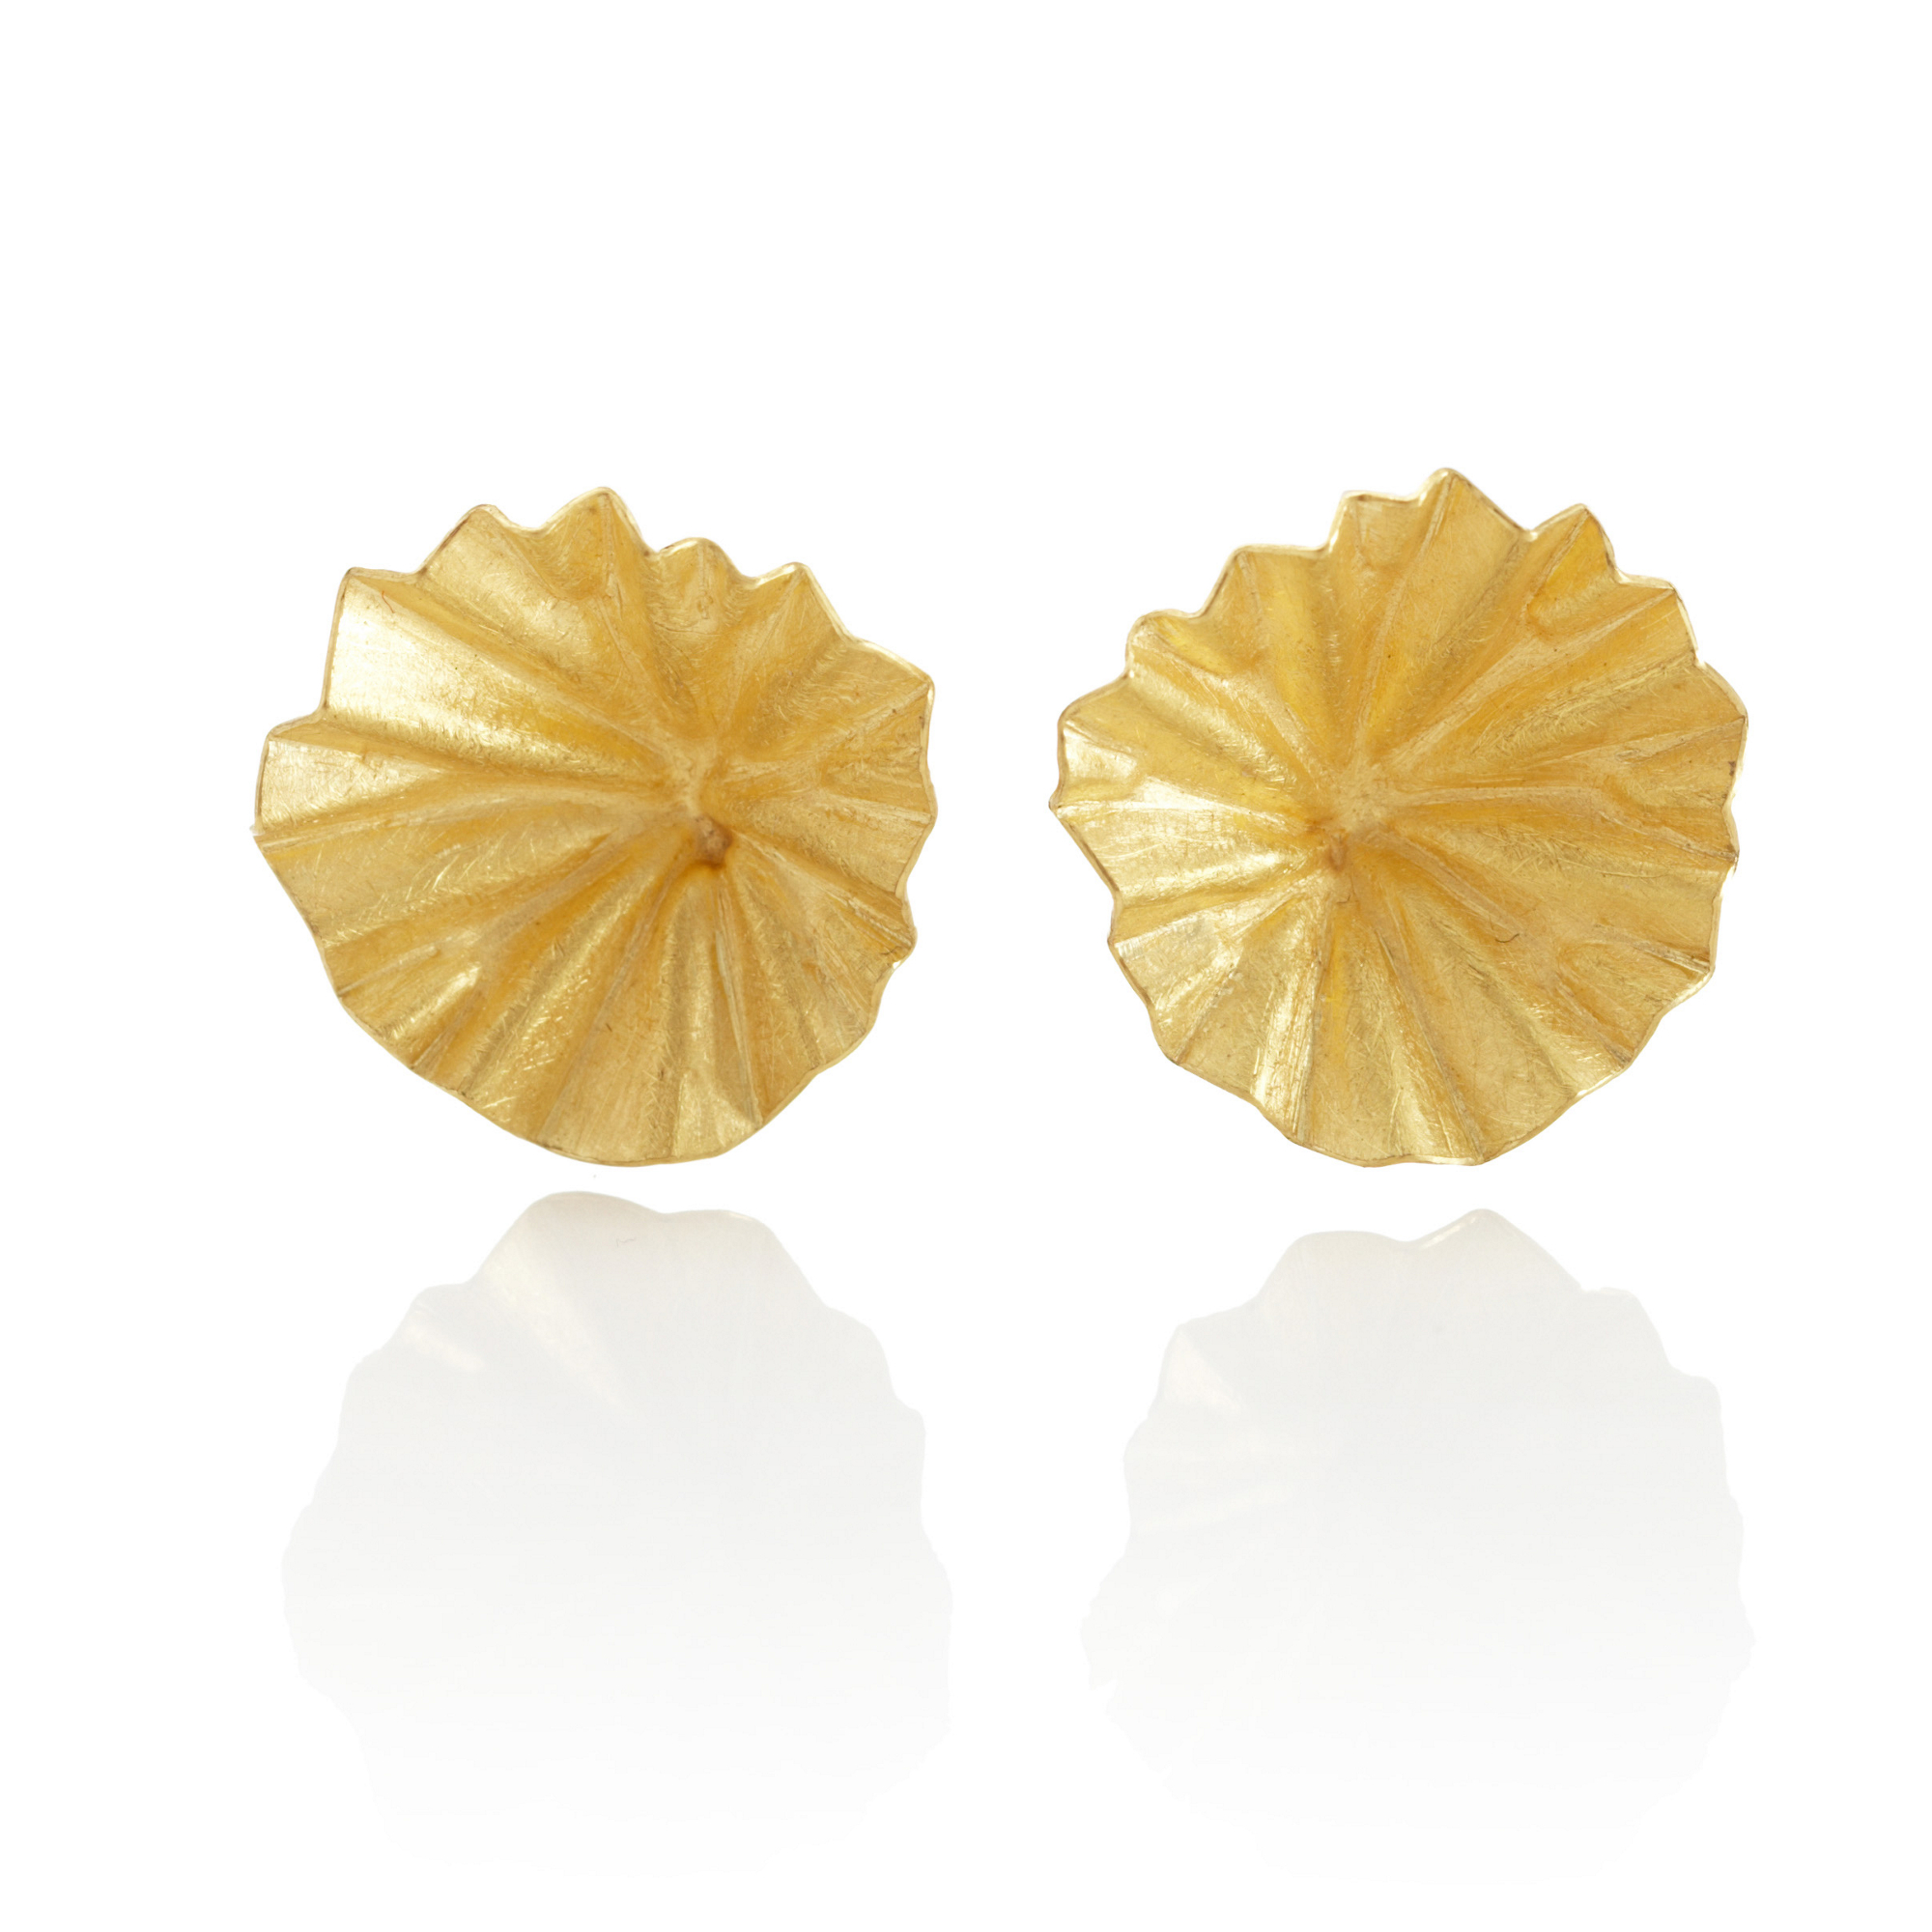 Petra Class Gold Lotus Leaf Earrings